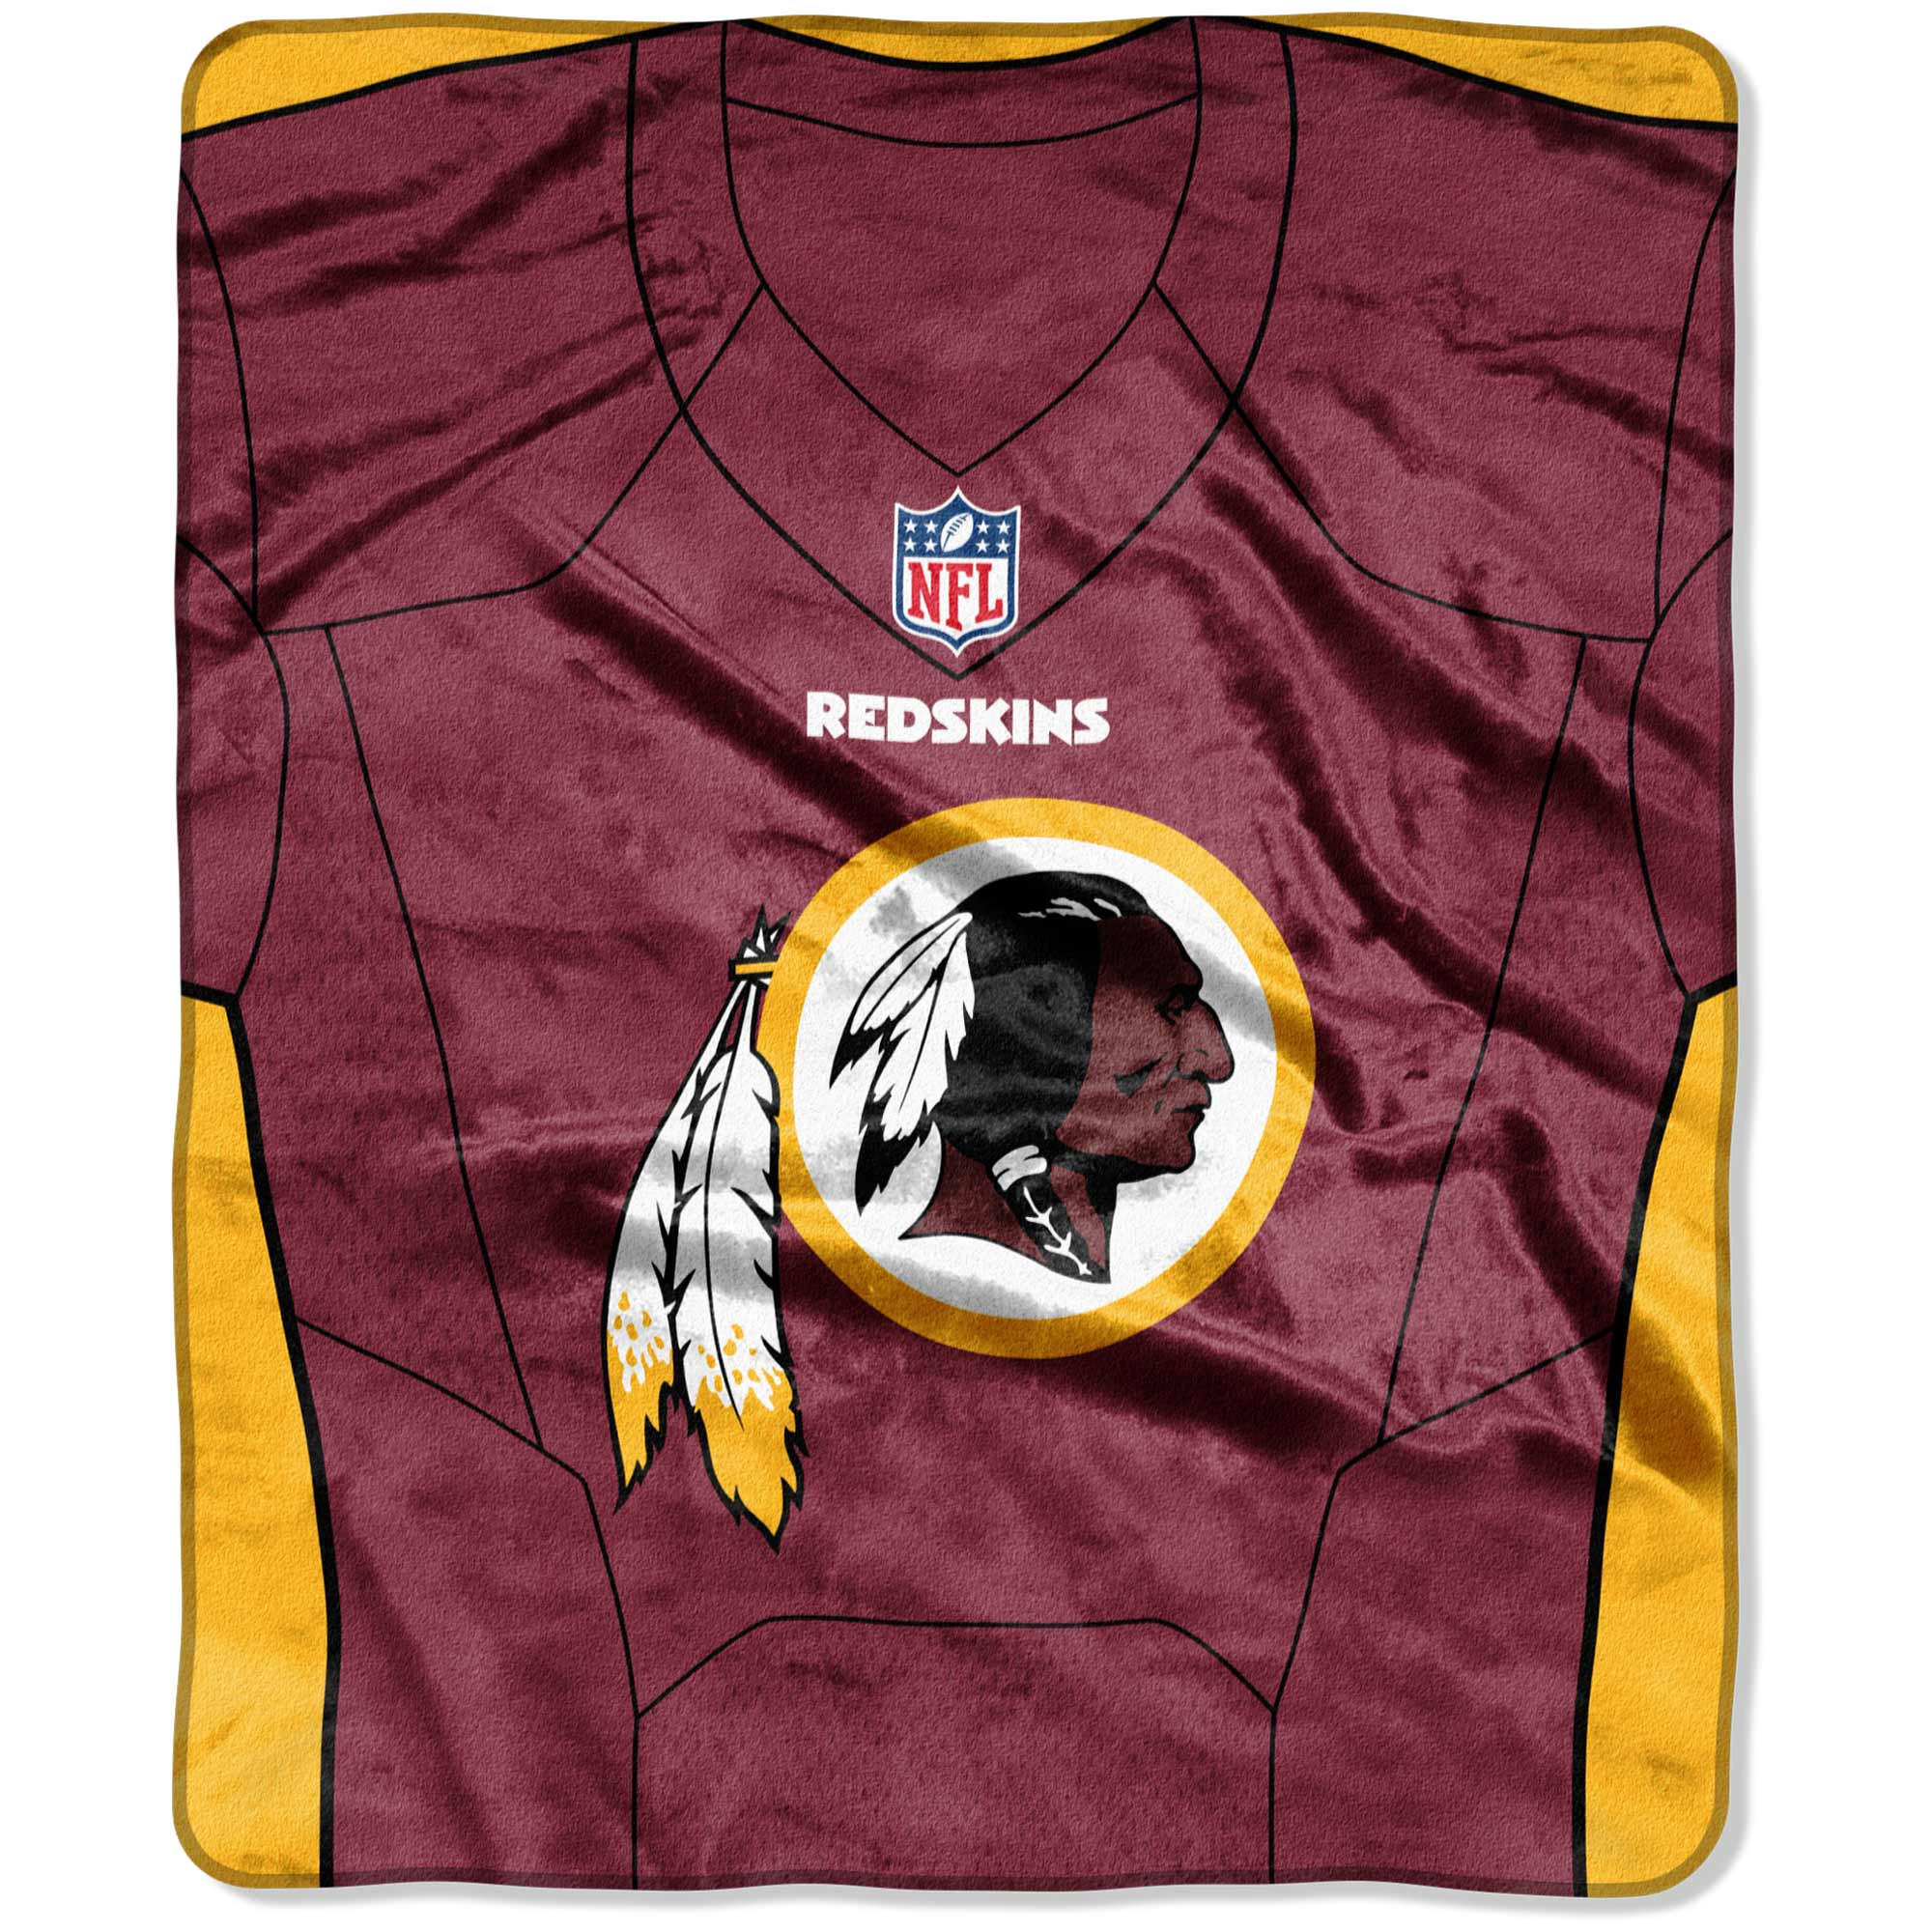 "Washington Redskins The Northwest Company 50"" X 60"" Jersey Plush Blanket - No Size"